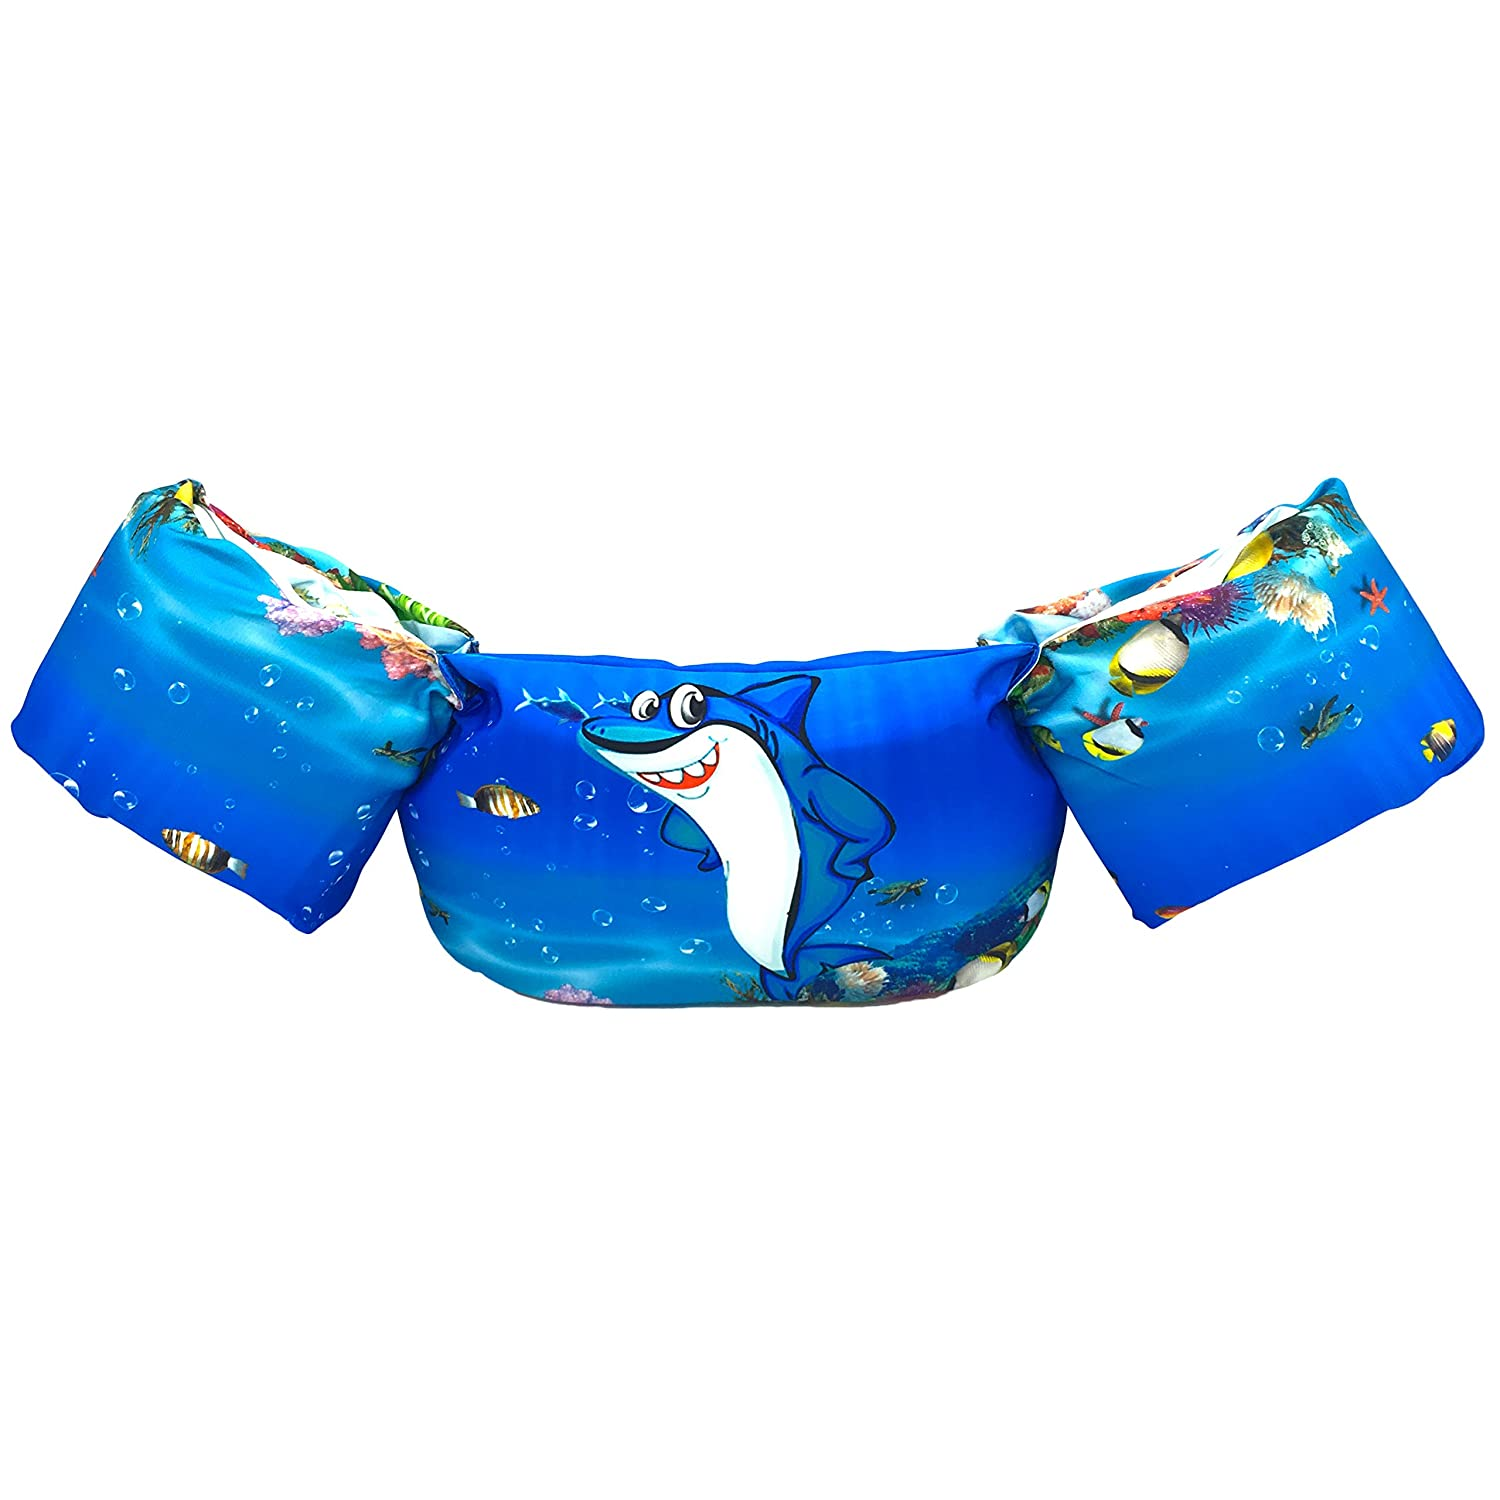 Silfrae Swim Vests Swim Floatation Vest Learn-to-Swim Device Weighing from 30 to 50 lbs (FloatationVestPink Horse)